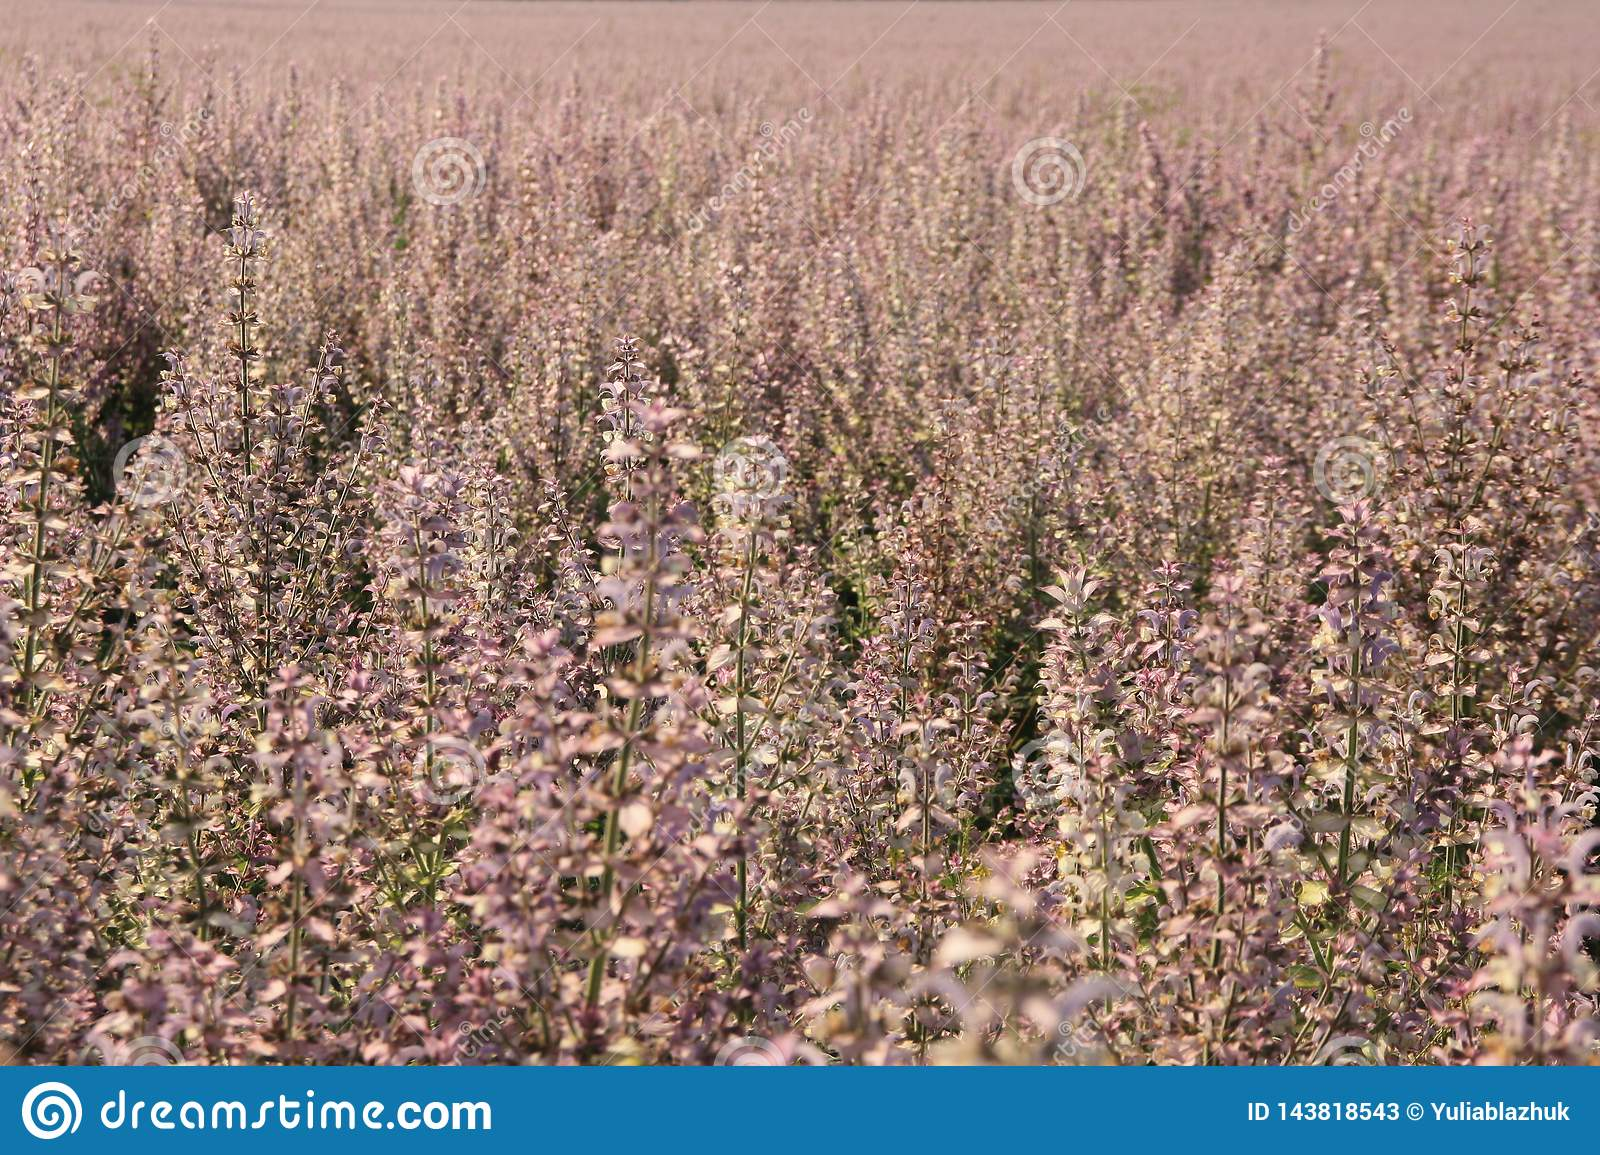 Pink sage flowers in the field summer background